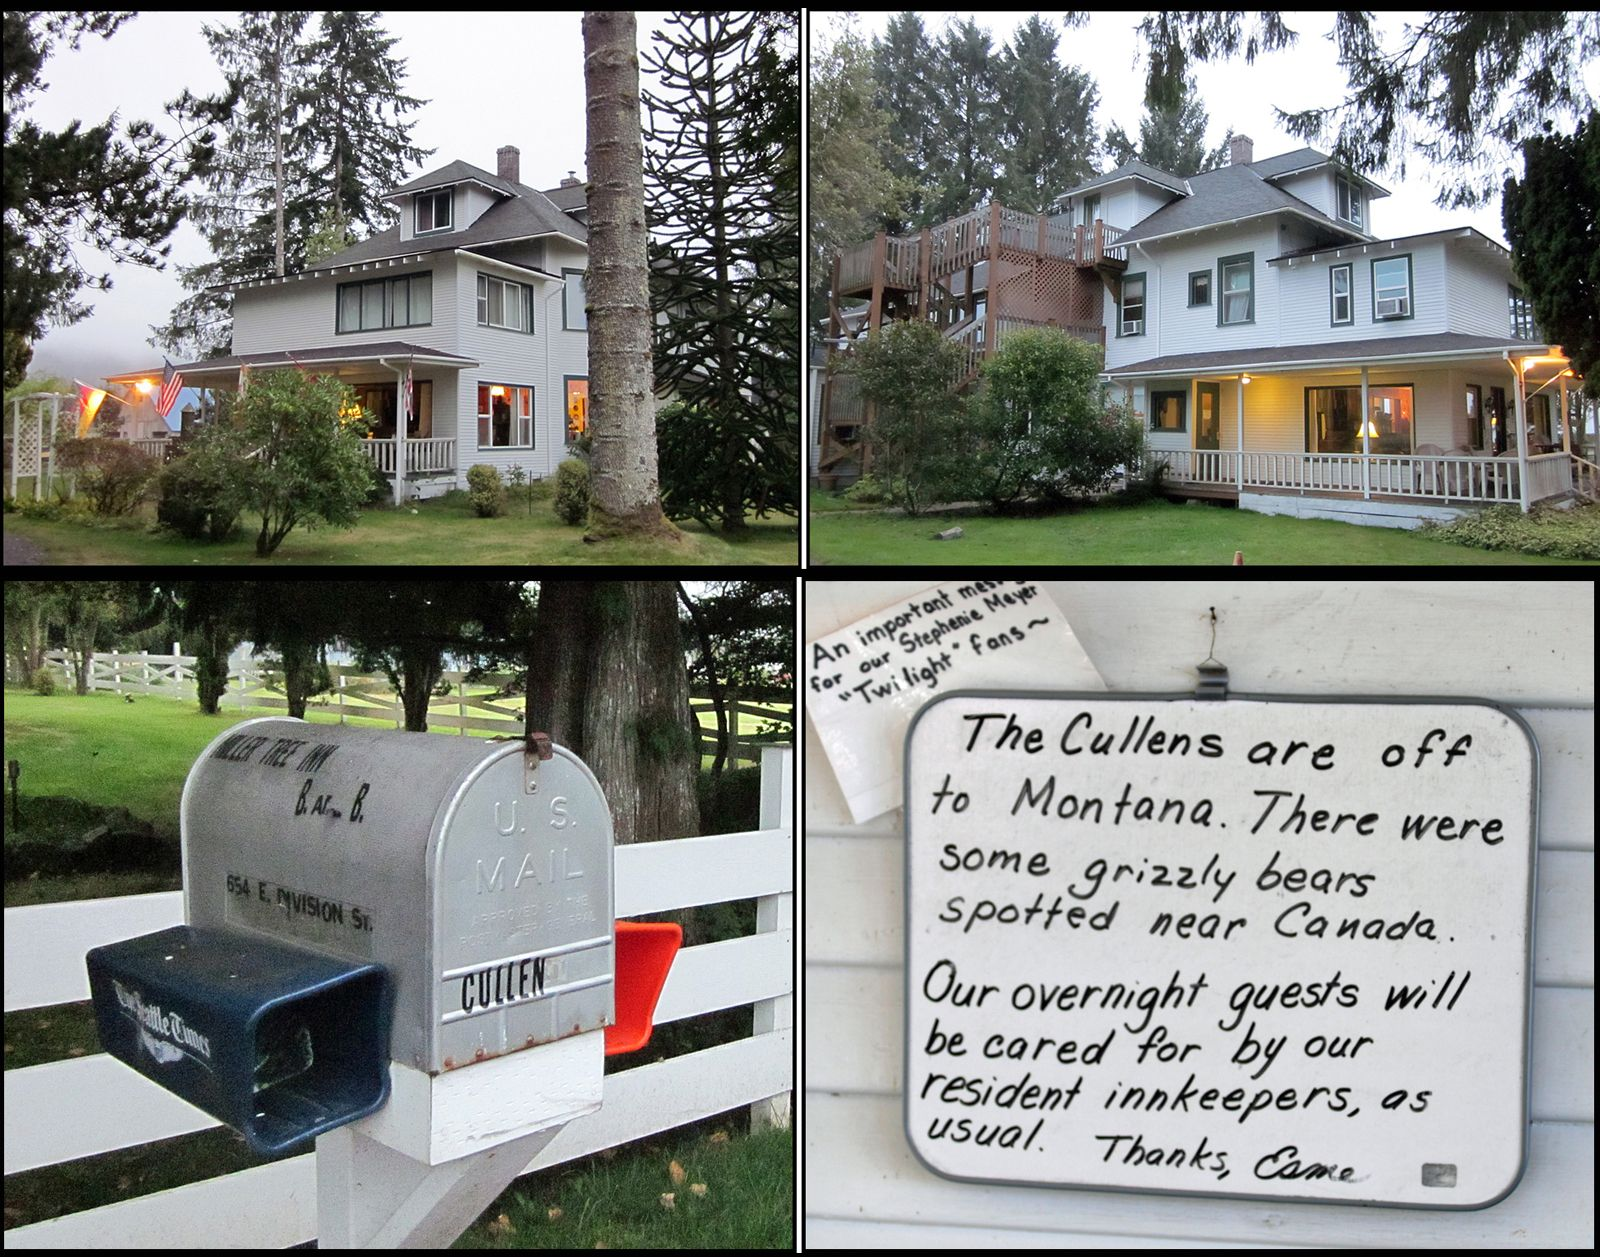 The Cullen House IN Forks is the Miller Tree Inn (Site #10 of http